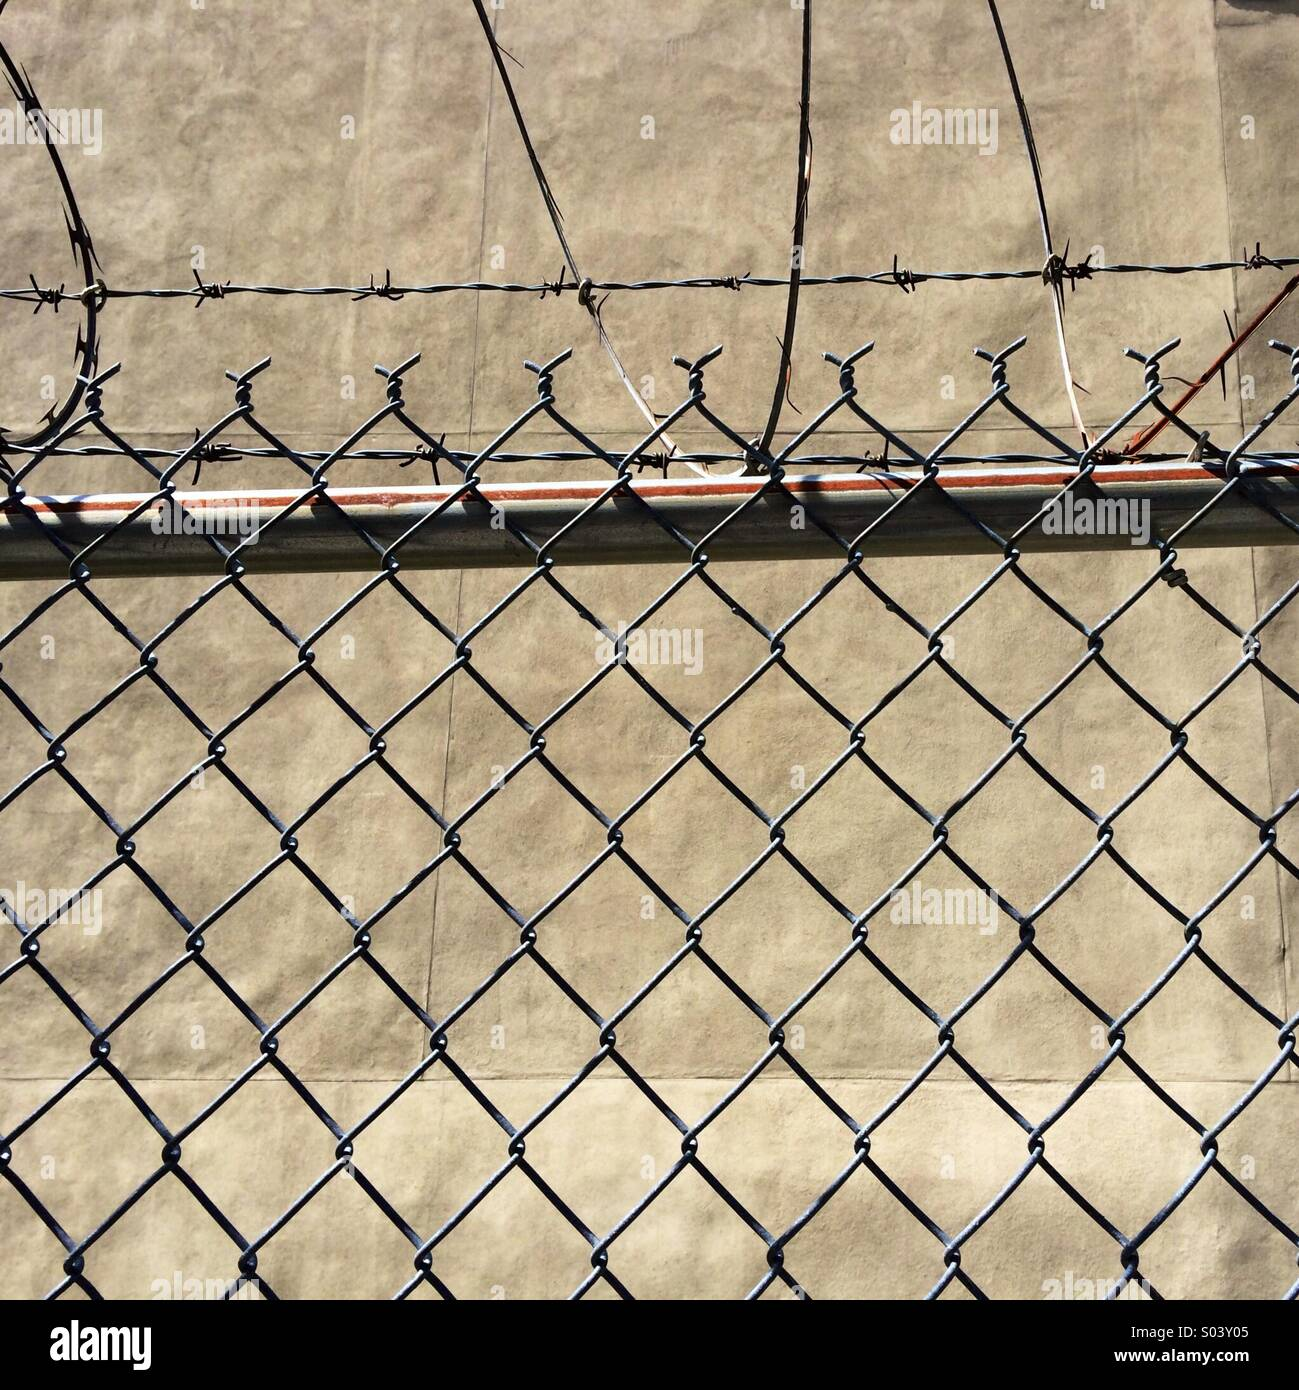 fence and barbed wire - Stock Image